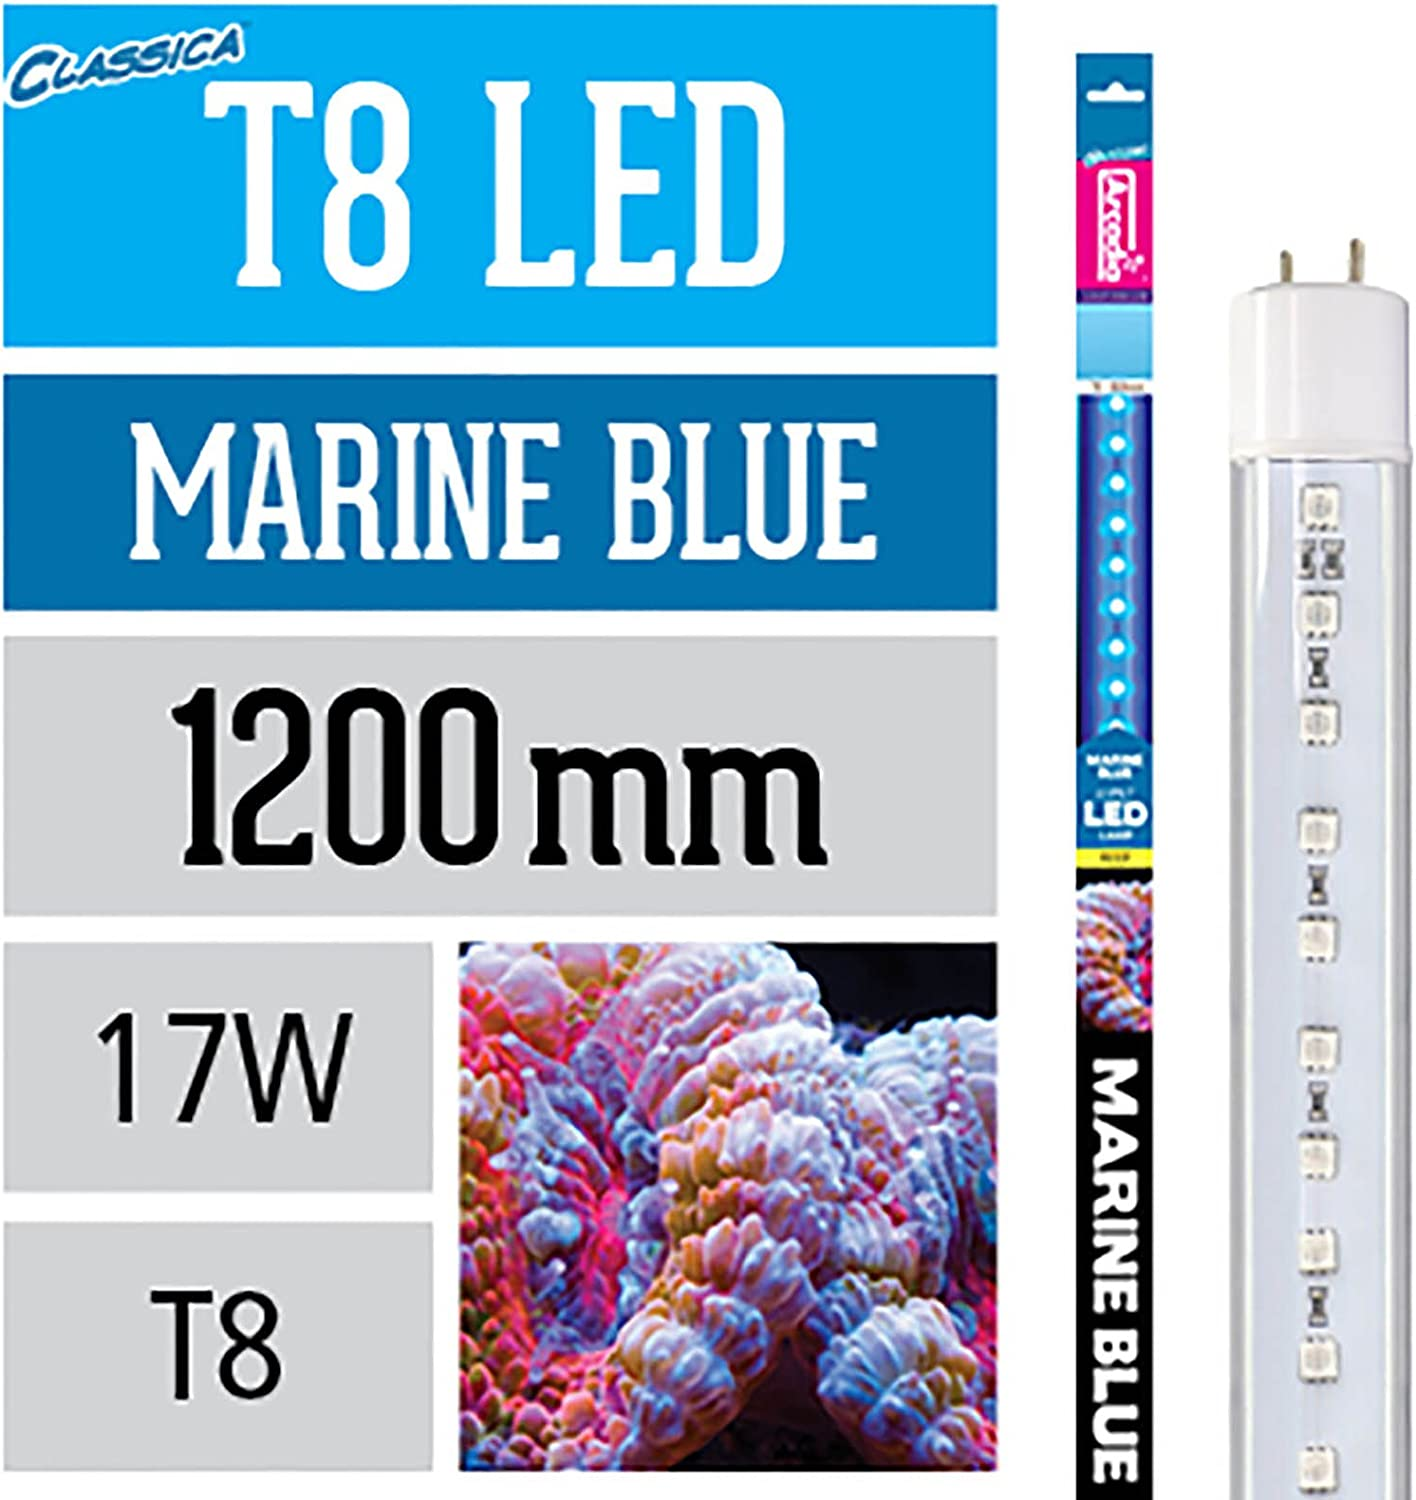 Arcadia Classica T8 Marine bluee LED Aquarium Lamp 17W  Length 1200mm   48